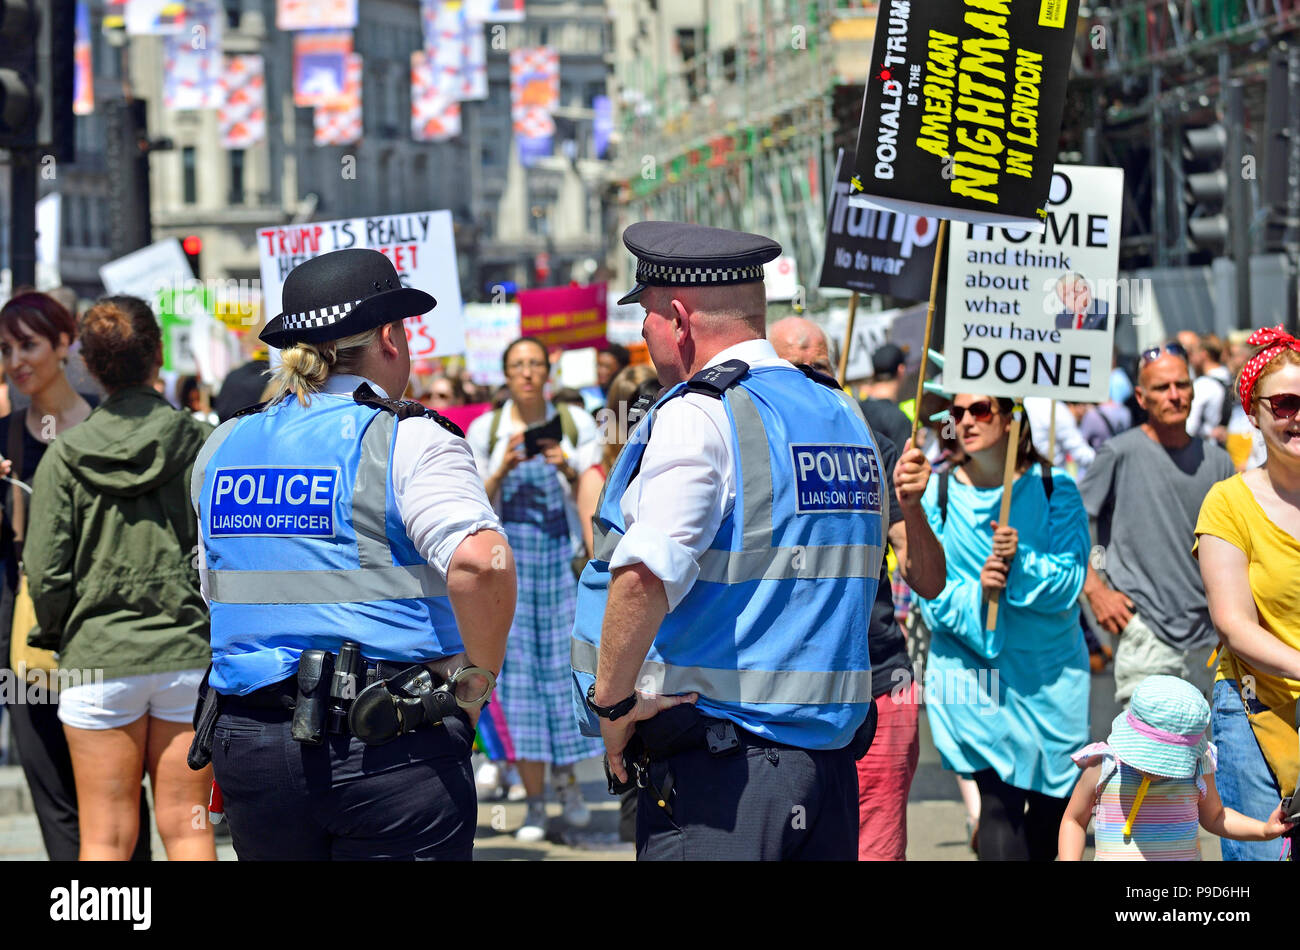 Metropolitan Police Liaison Officers at an anti-Trump march in central London, England, UK. 13th July 2018 Stock Photo